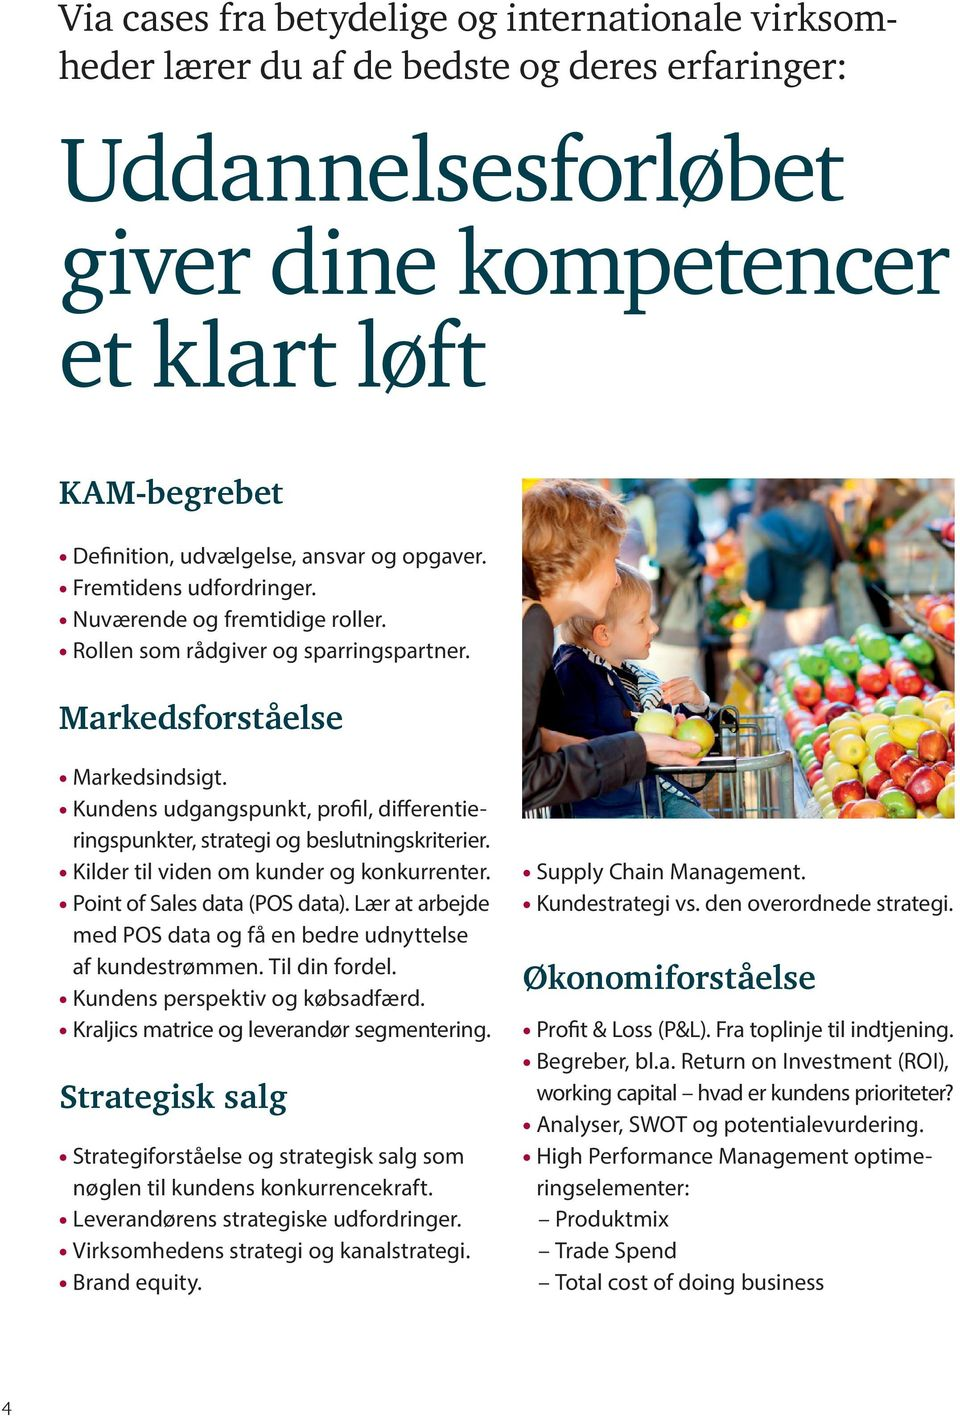 Kundens udgangspunkt, profil, differentieringspunkter, strategi og beslutningskriterier. Kilder til viden om kunder og konkurrenter. Point of Sales data (POS data).